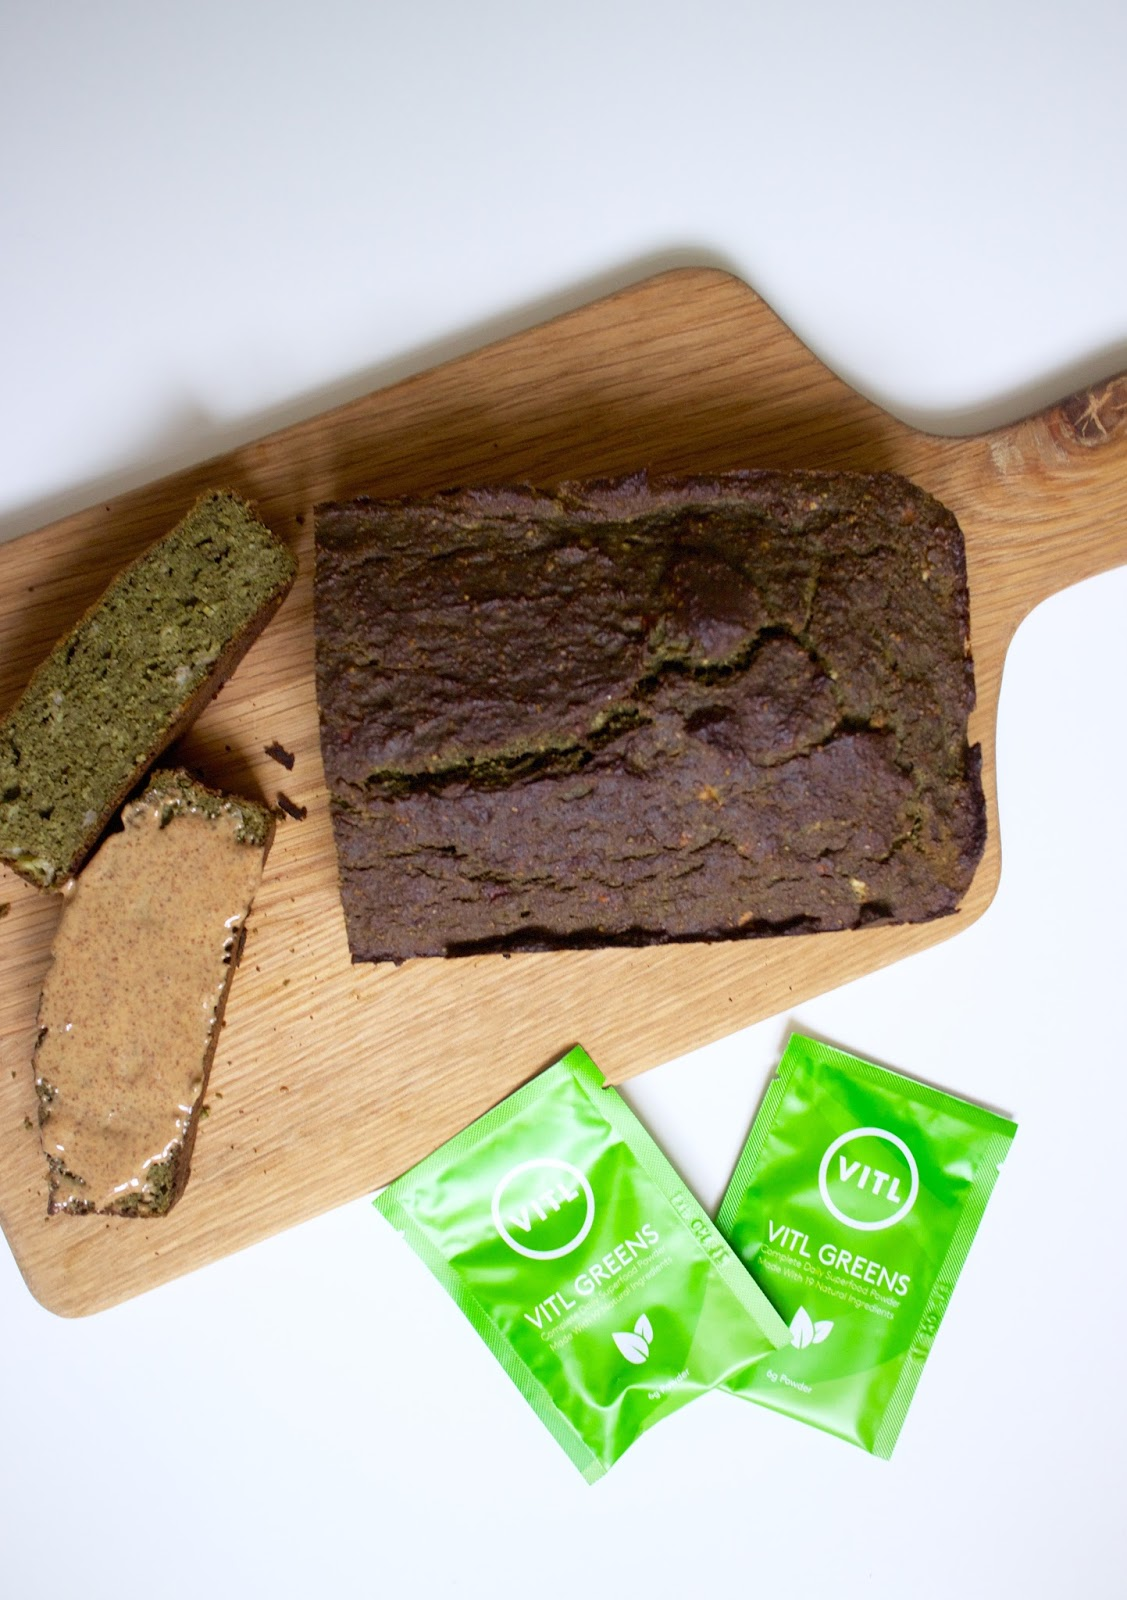 She's So Lucy VITL Greens Review Green Bluten Free Sugar Free Banana Bread Recipe Easy Healthy UK British Blogger Health Wellness Beauty